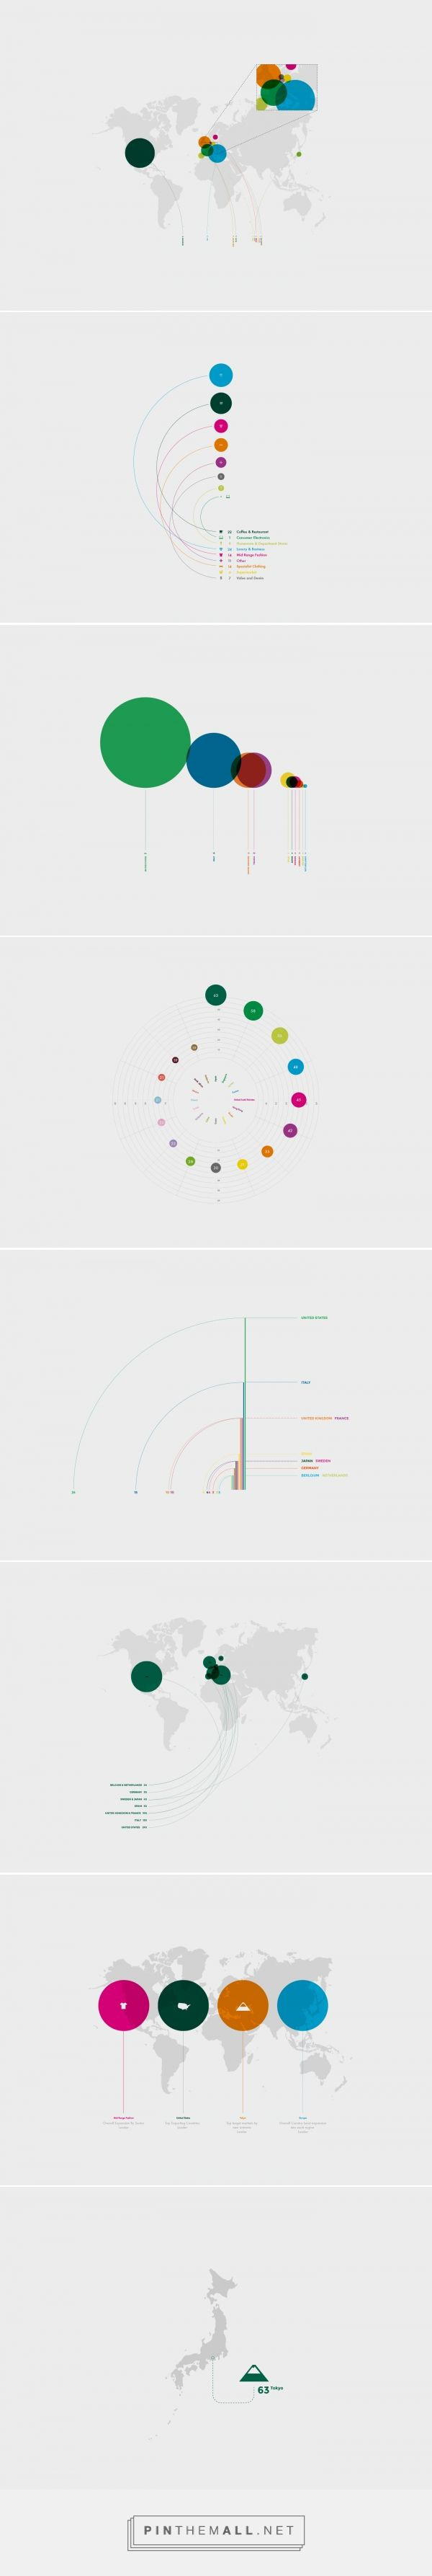 #Infographic #Behance - created via http://pinthemall.net